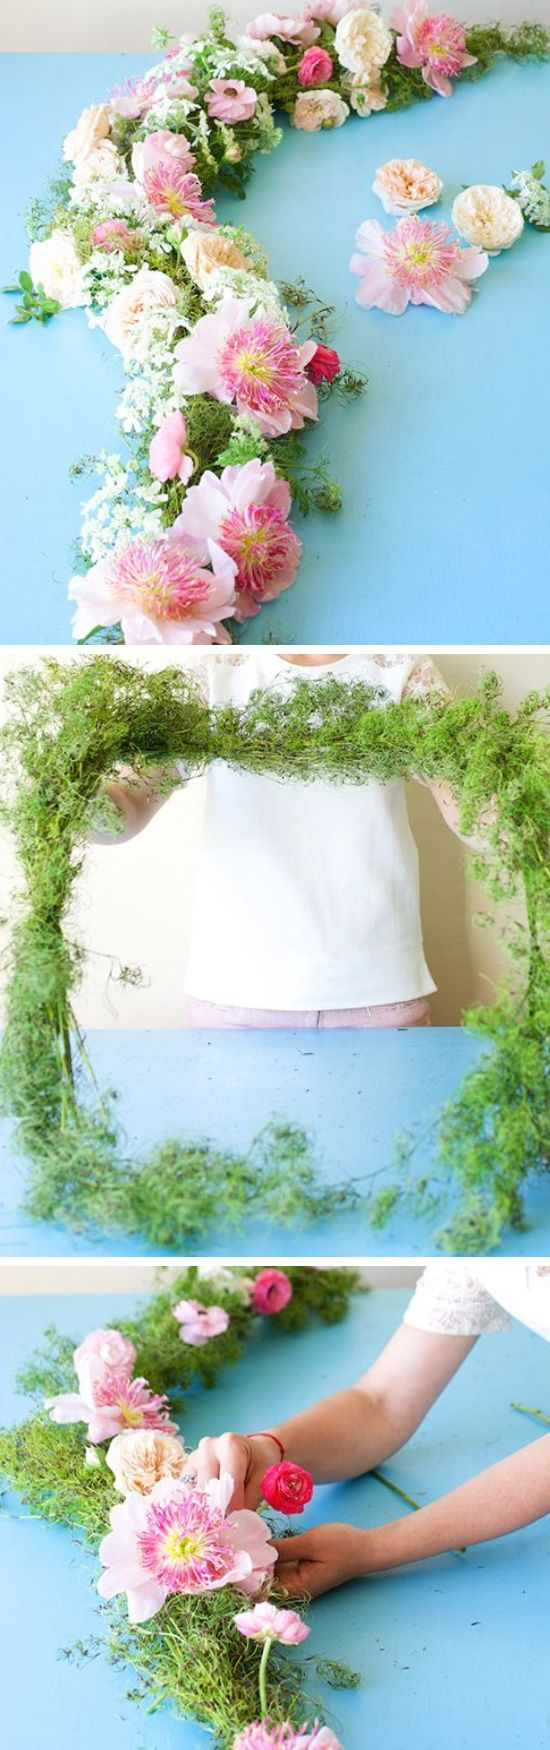 DIY Flower Crown and Garland Tutorial   Click Pic for 24 DIY Spring Wedding Ideas on a Budget   DIY Spring Wedding Flowers Ideas